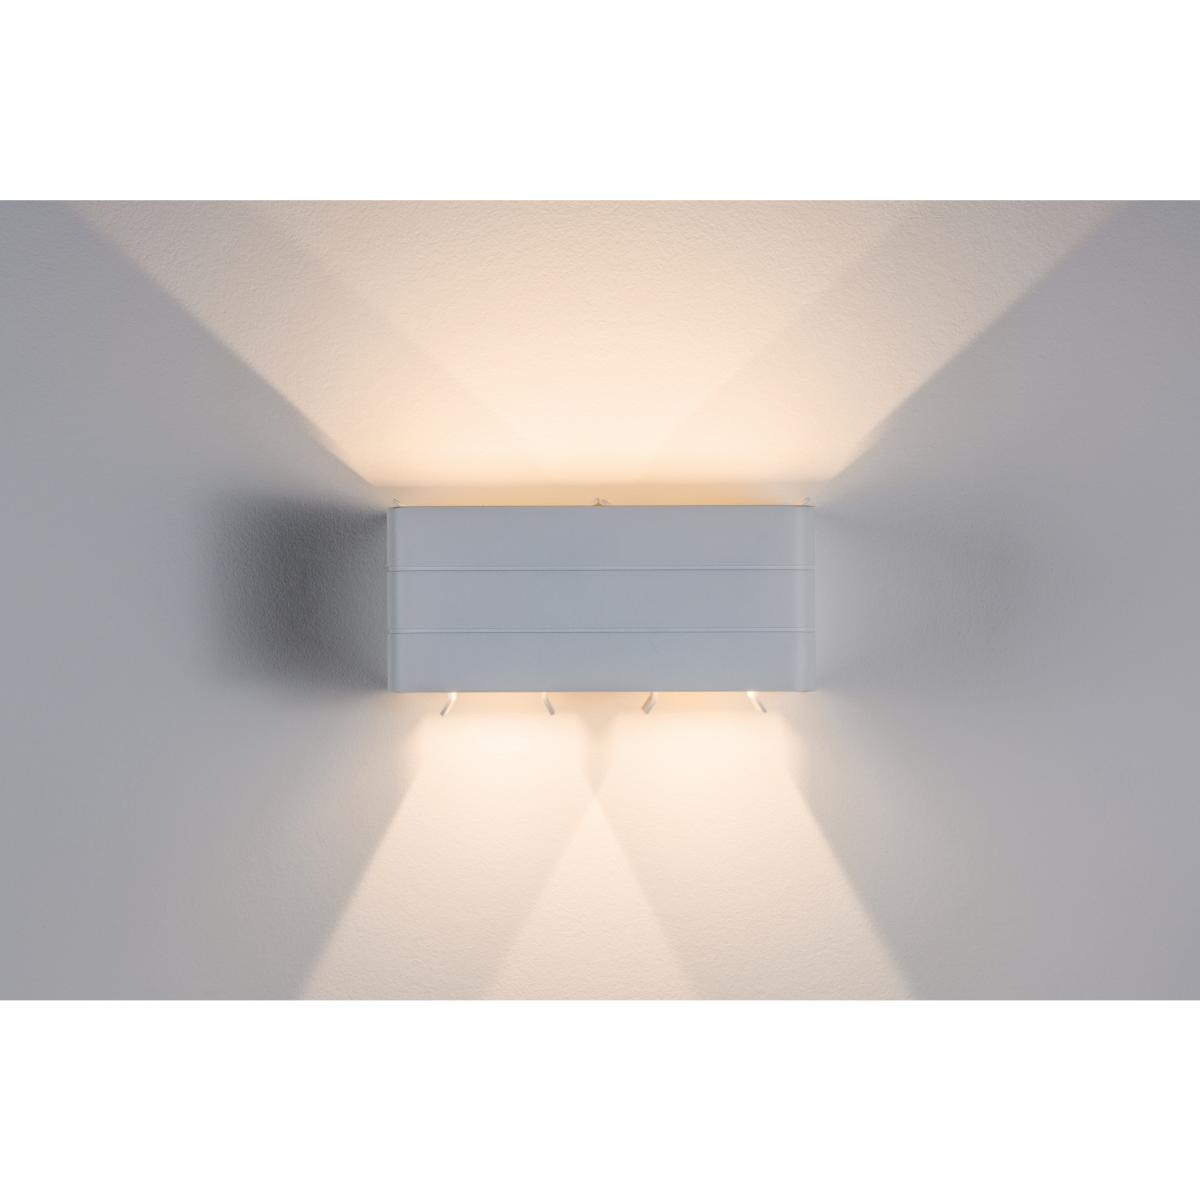 Spot Led Encastrable Plafond Applique Murale Design Scena Paulmann 4 X 2.5w Led 220v 70794